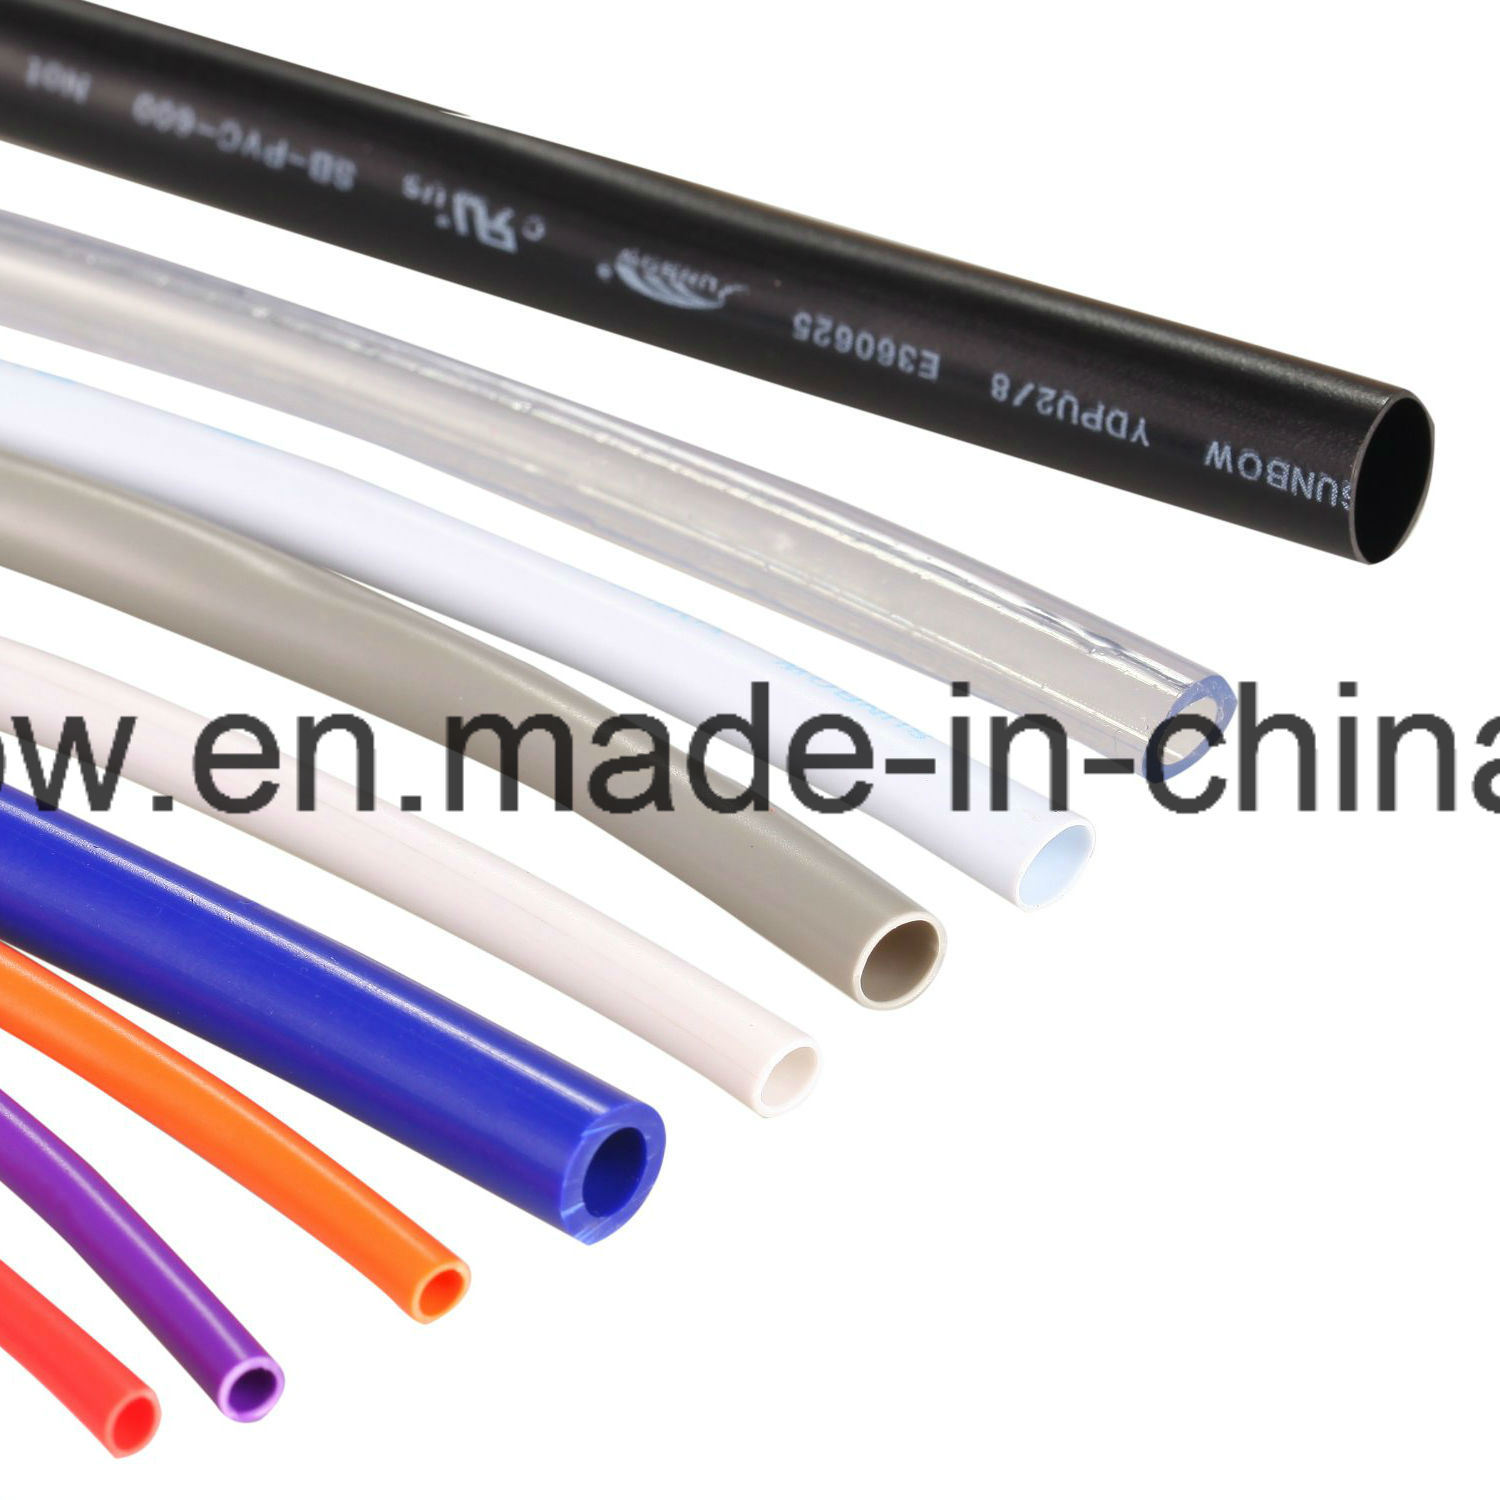 hight resolution of ul approved flexible pvc tube for wire harness